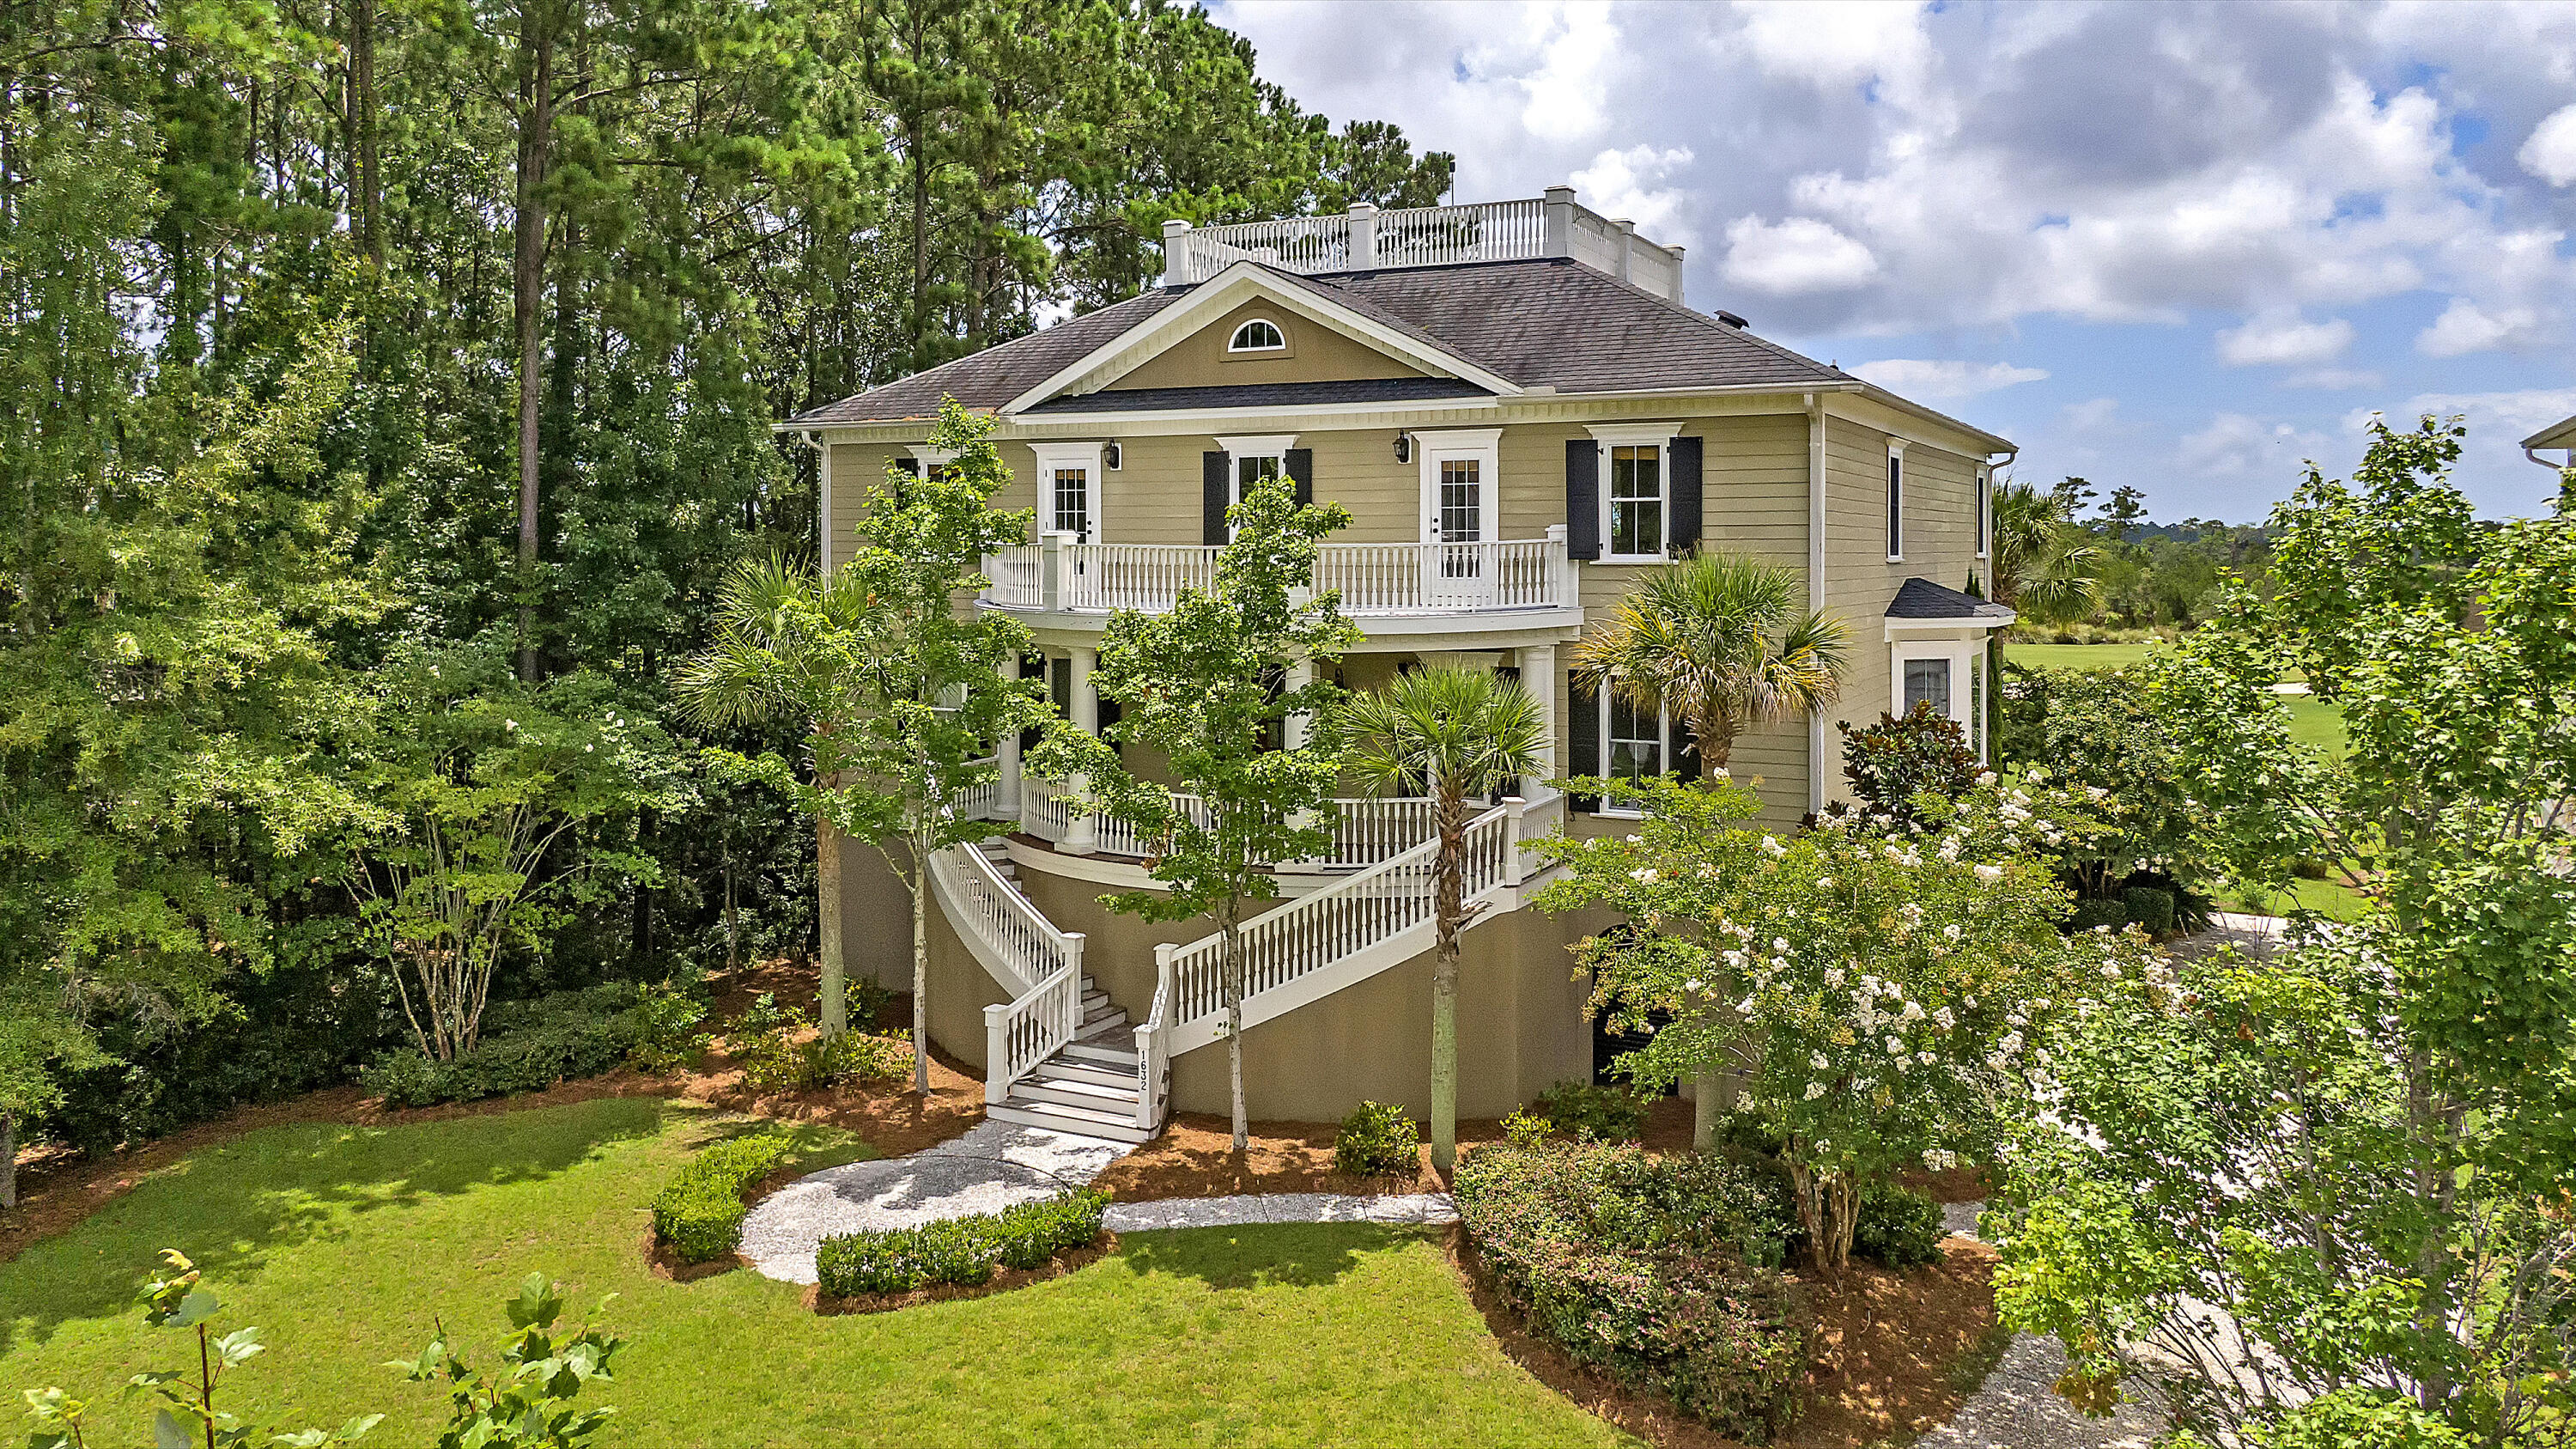 Rivertowne Country Club Homes For Sale - 1632 Rivertowne Country Club, Mount Pleasant, SC - 43